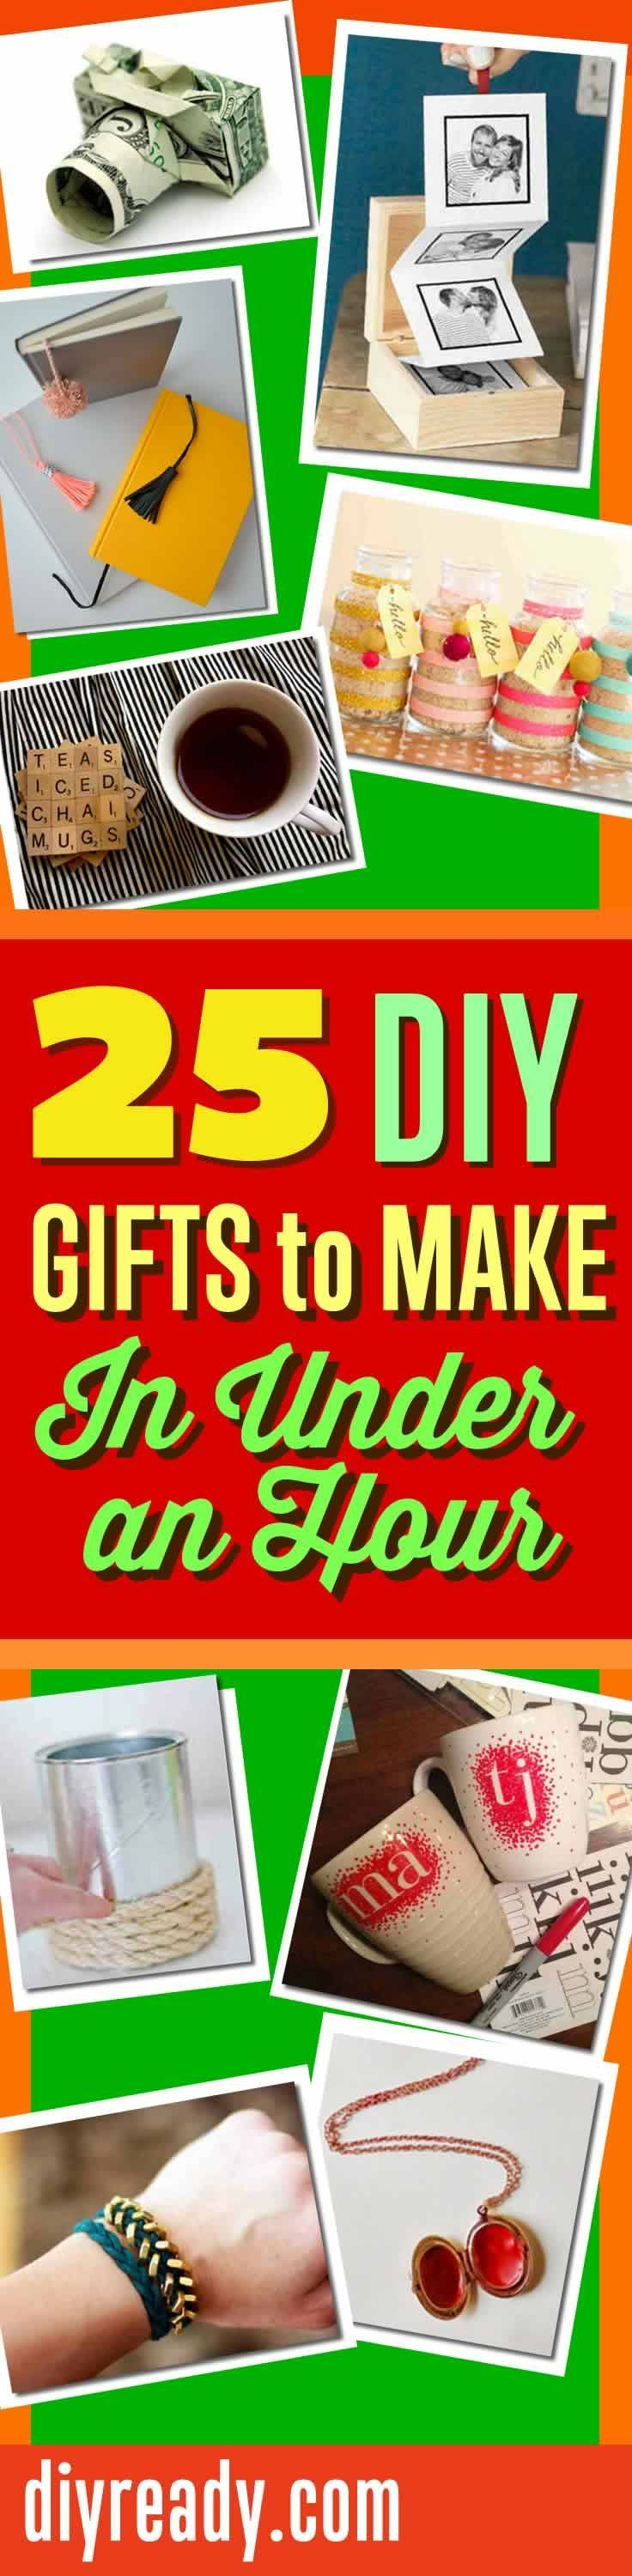 Quick christmas gifts regalitos diseo ecologico y hogar hogar quick diy gifts you can make in under an hour quick diy projects and do solutioingenieria Choice Image